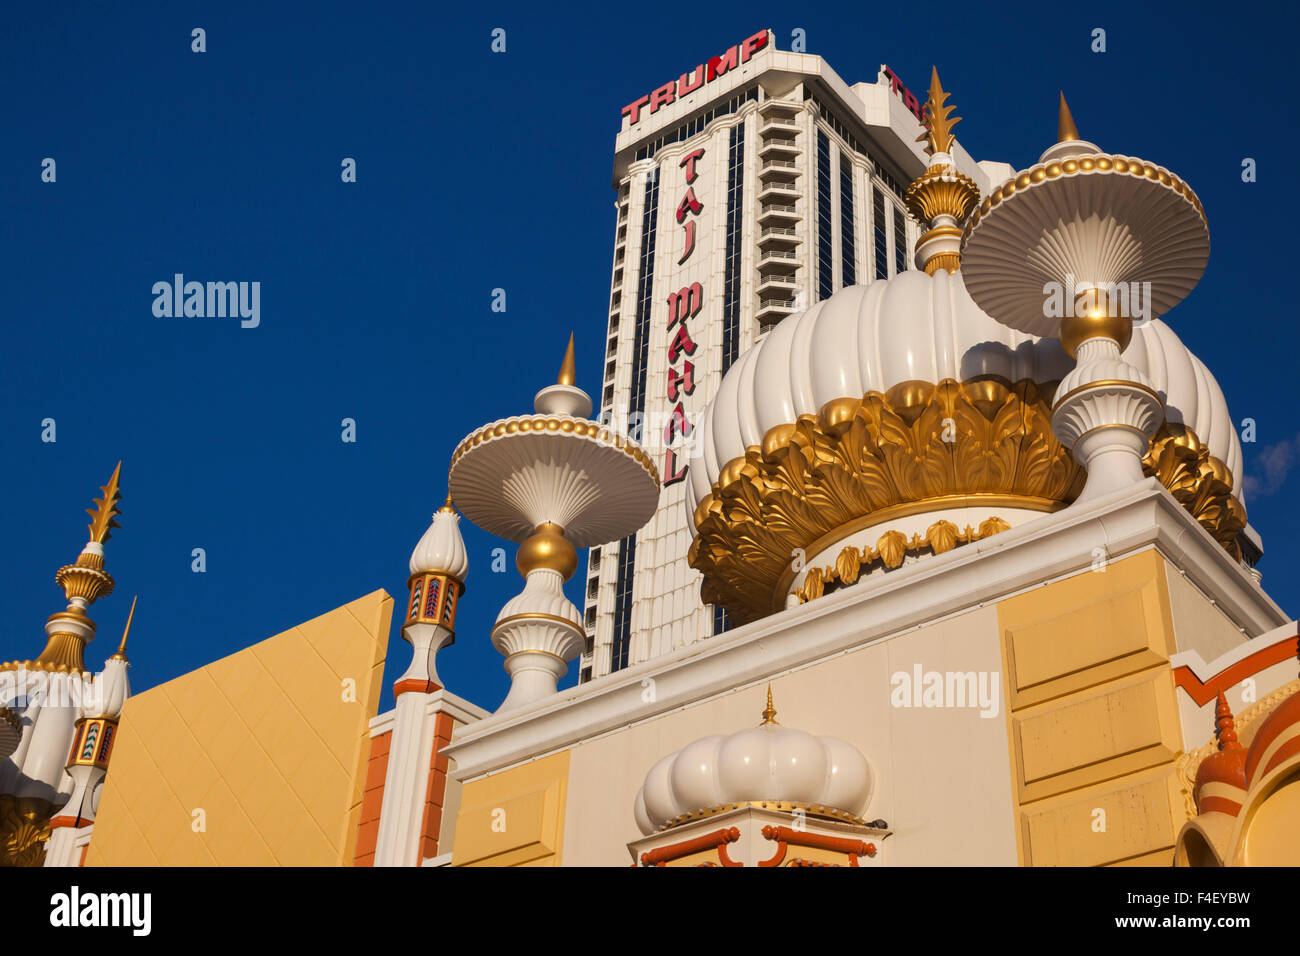 USA, New Jersey, Atlantic City, Promenade und Trump Taj Mahal Hotel und Casino, dawn Stockbild